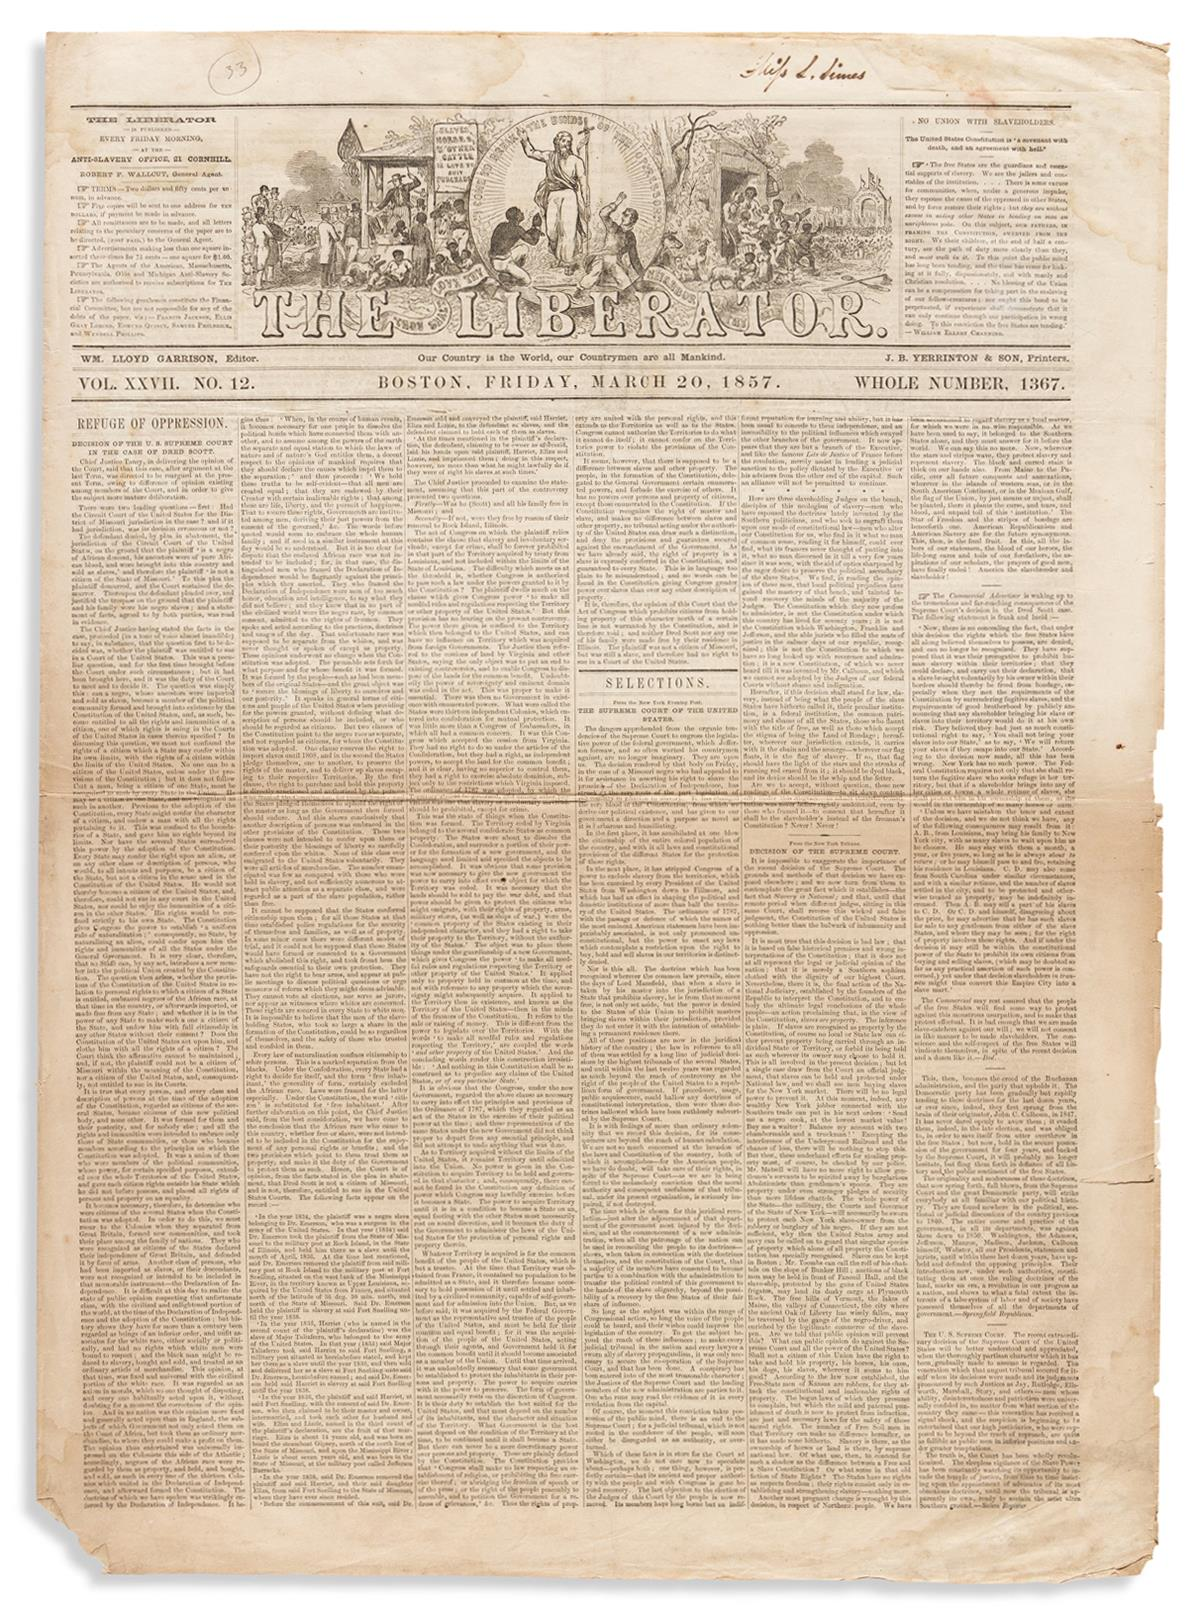 (SLAVERY AND ABOLITION.) The Liberators coverage of the infamous Dred Scott decision.